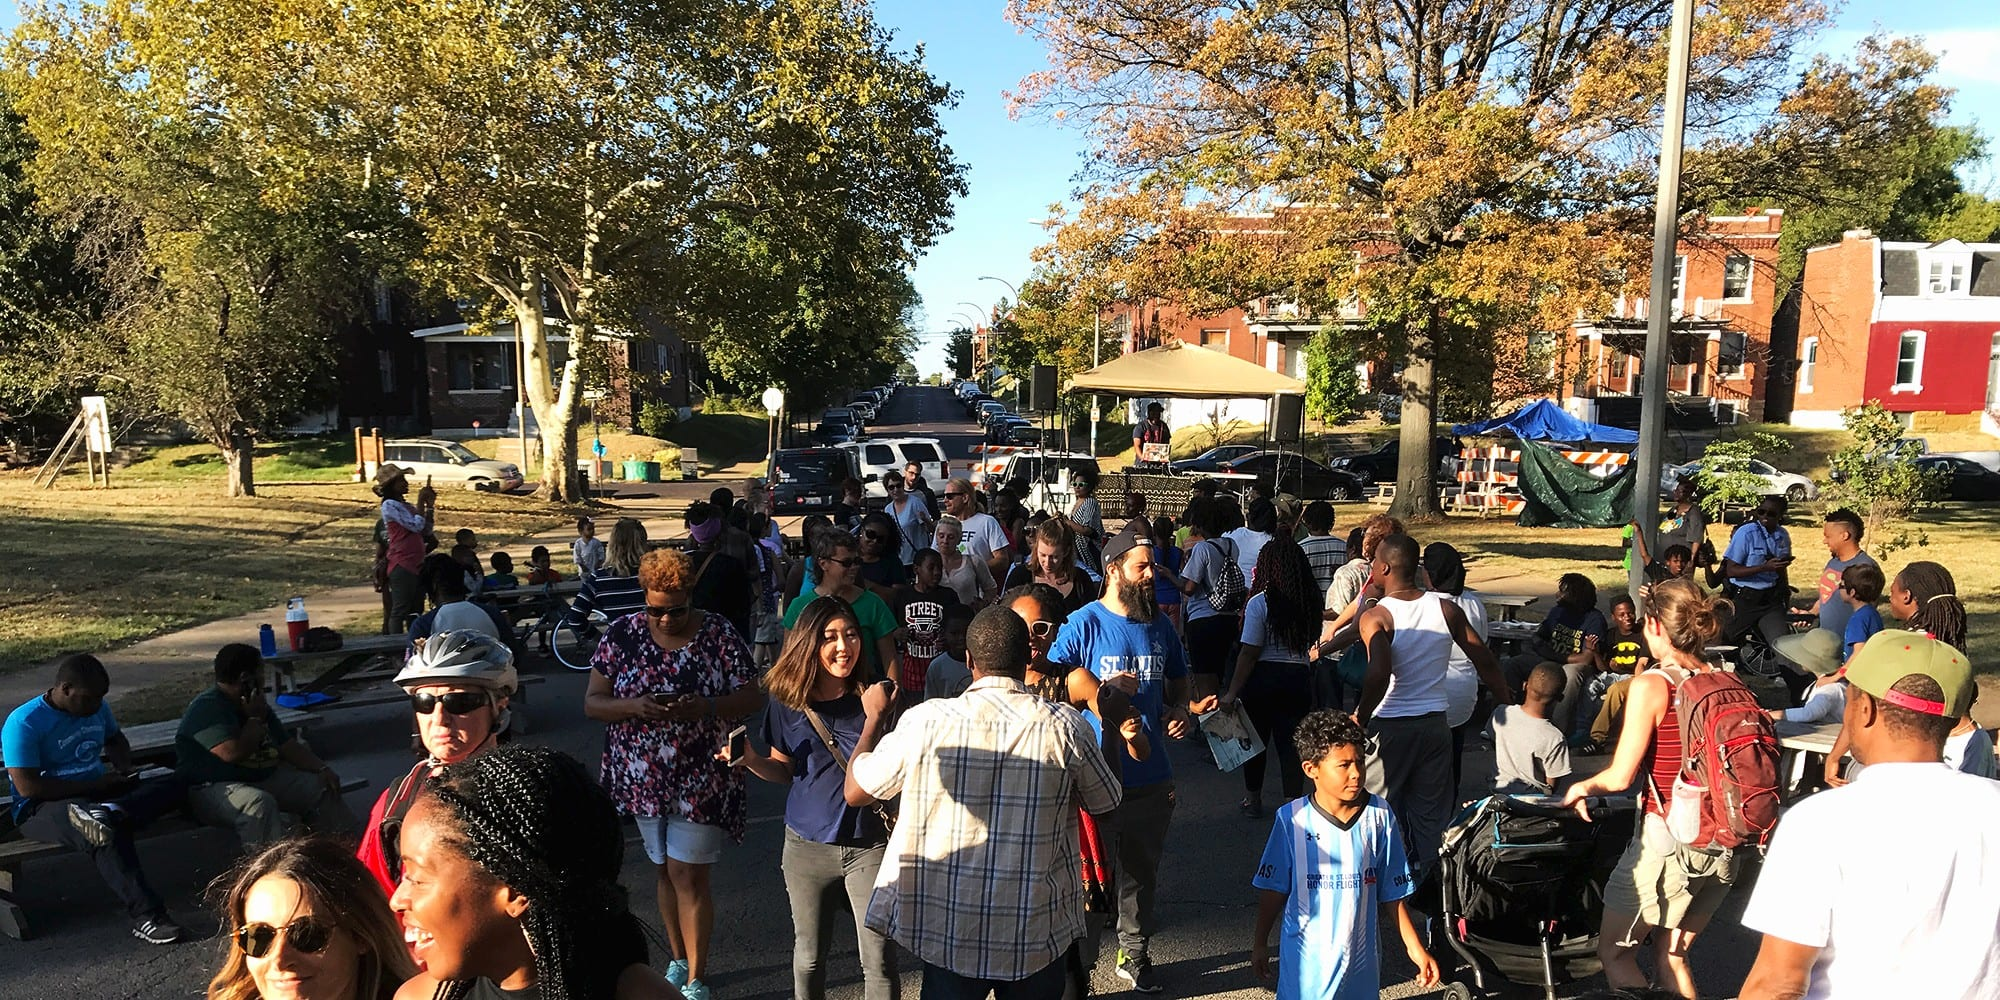 Crowds gather at the 2017 Common Sound Festival in Marquette Park in Dutchtown, St. Louis.